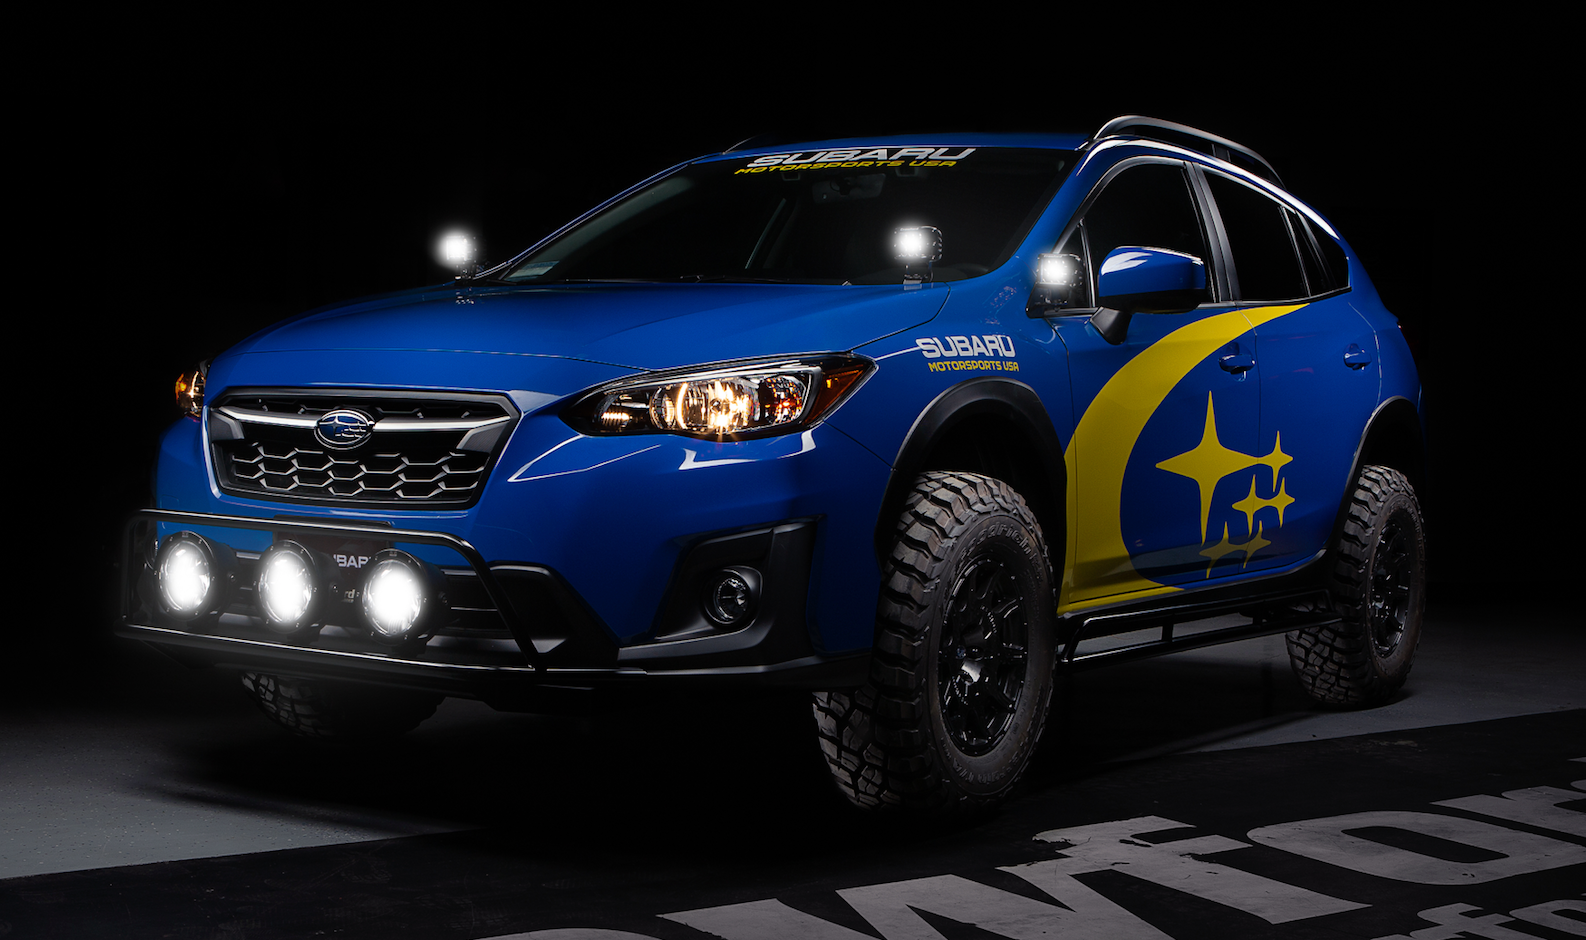 Crawford Performance Built Off-Road Subaru Crosstrek - Lift Kit